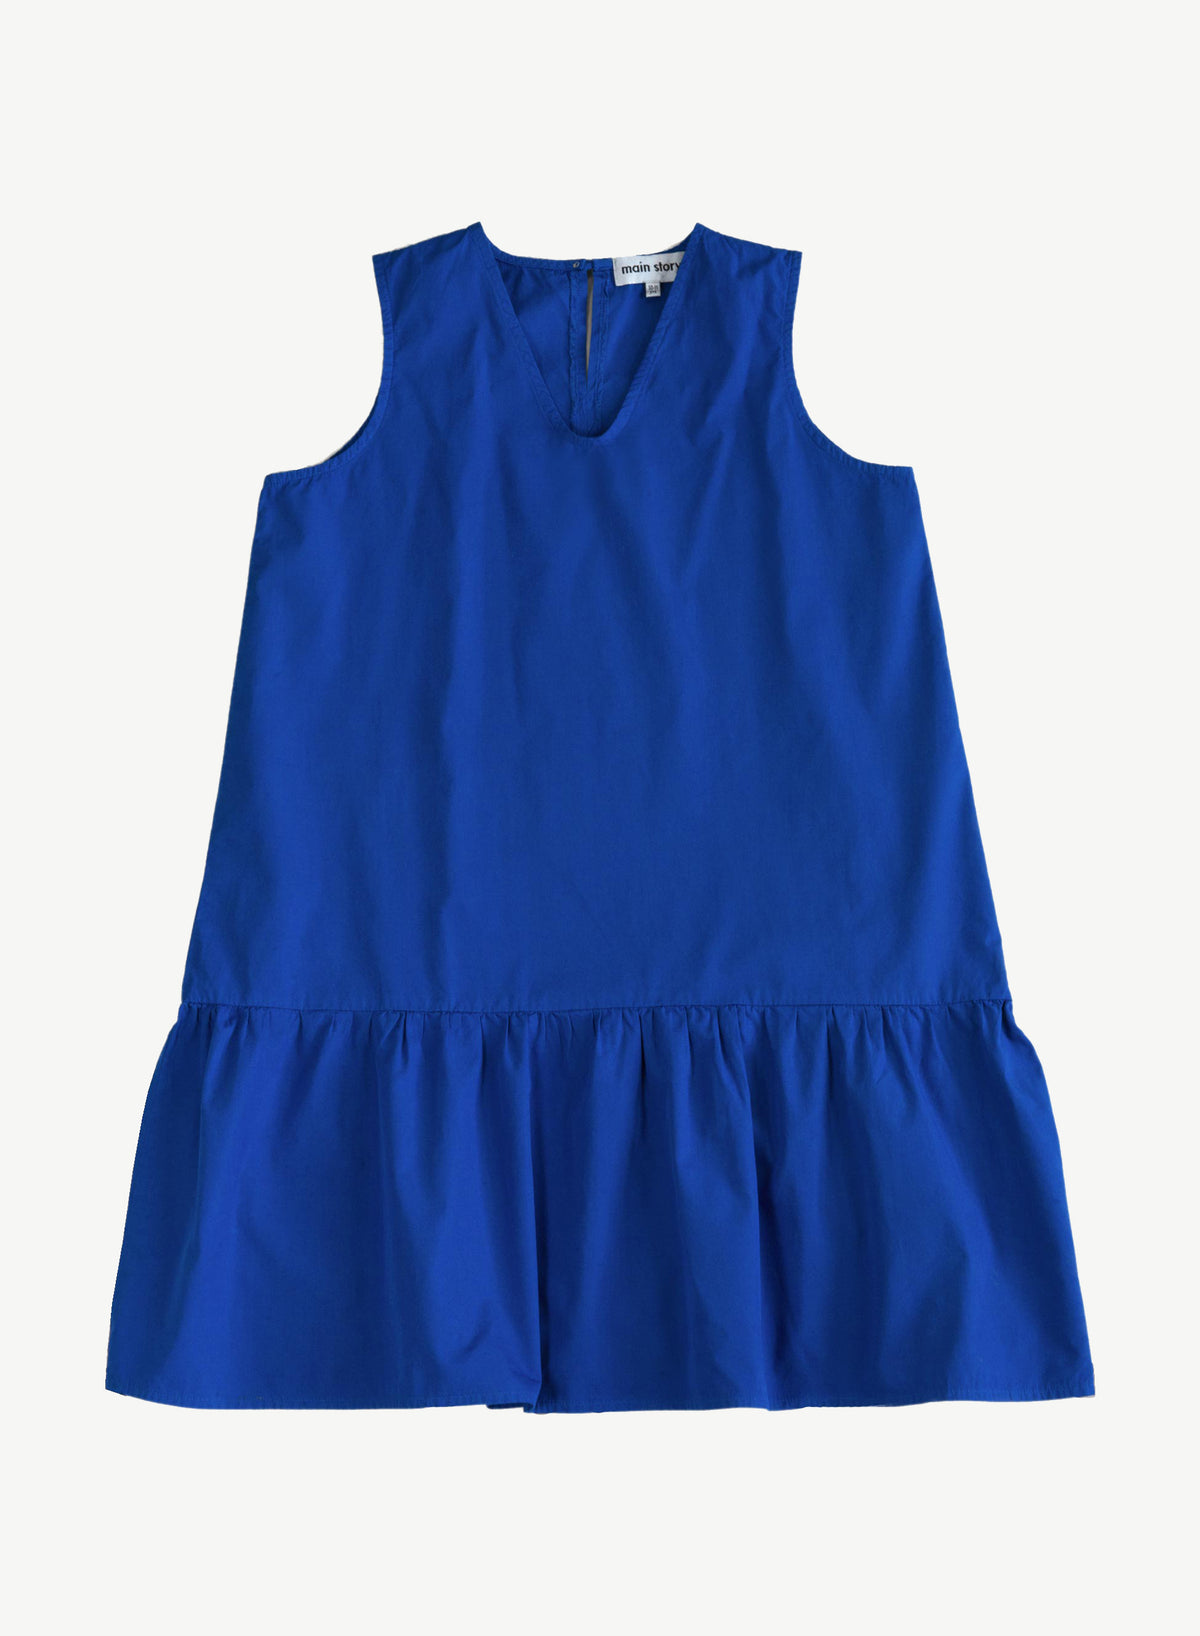 Dazzling Blue Frill Dress